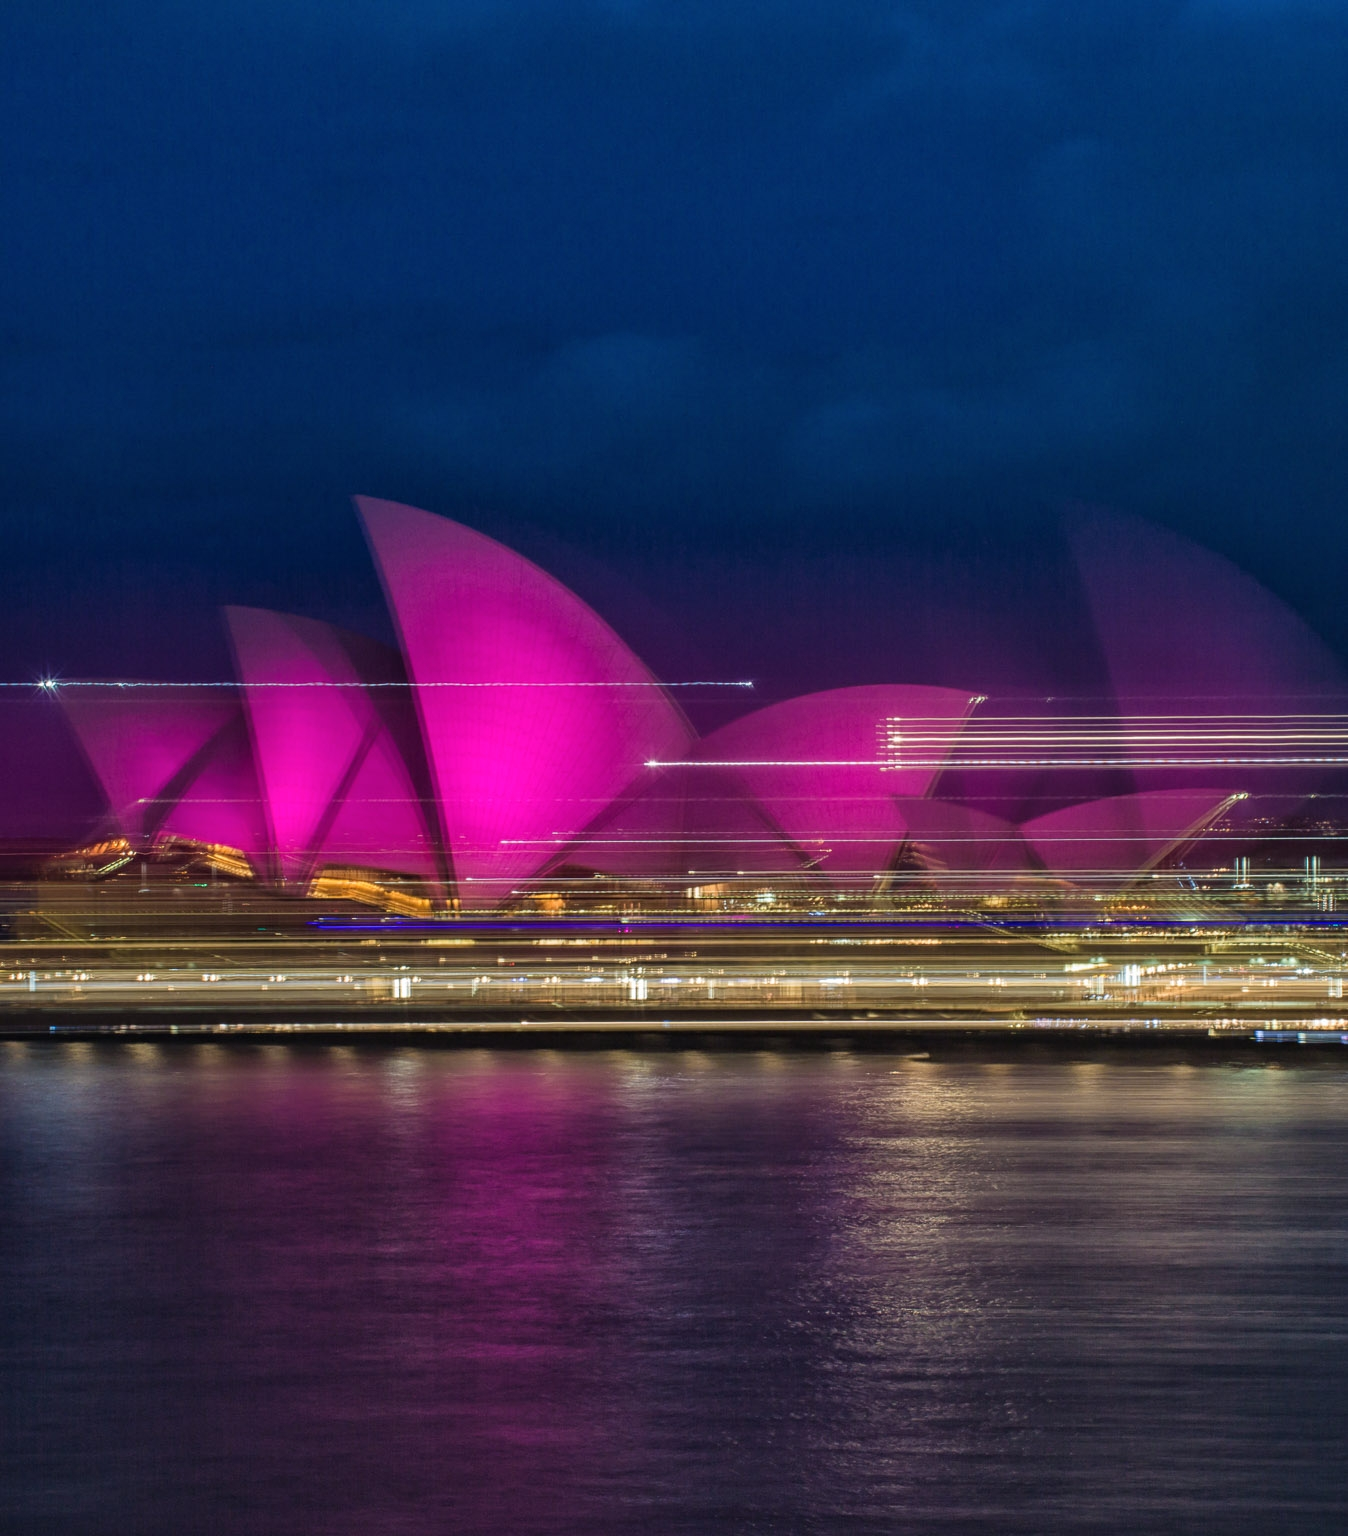 Sydney Private Photography Workshop -